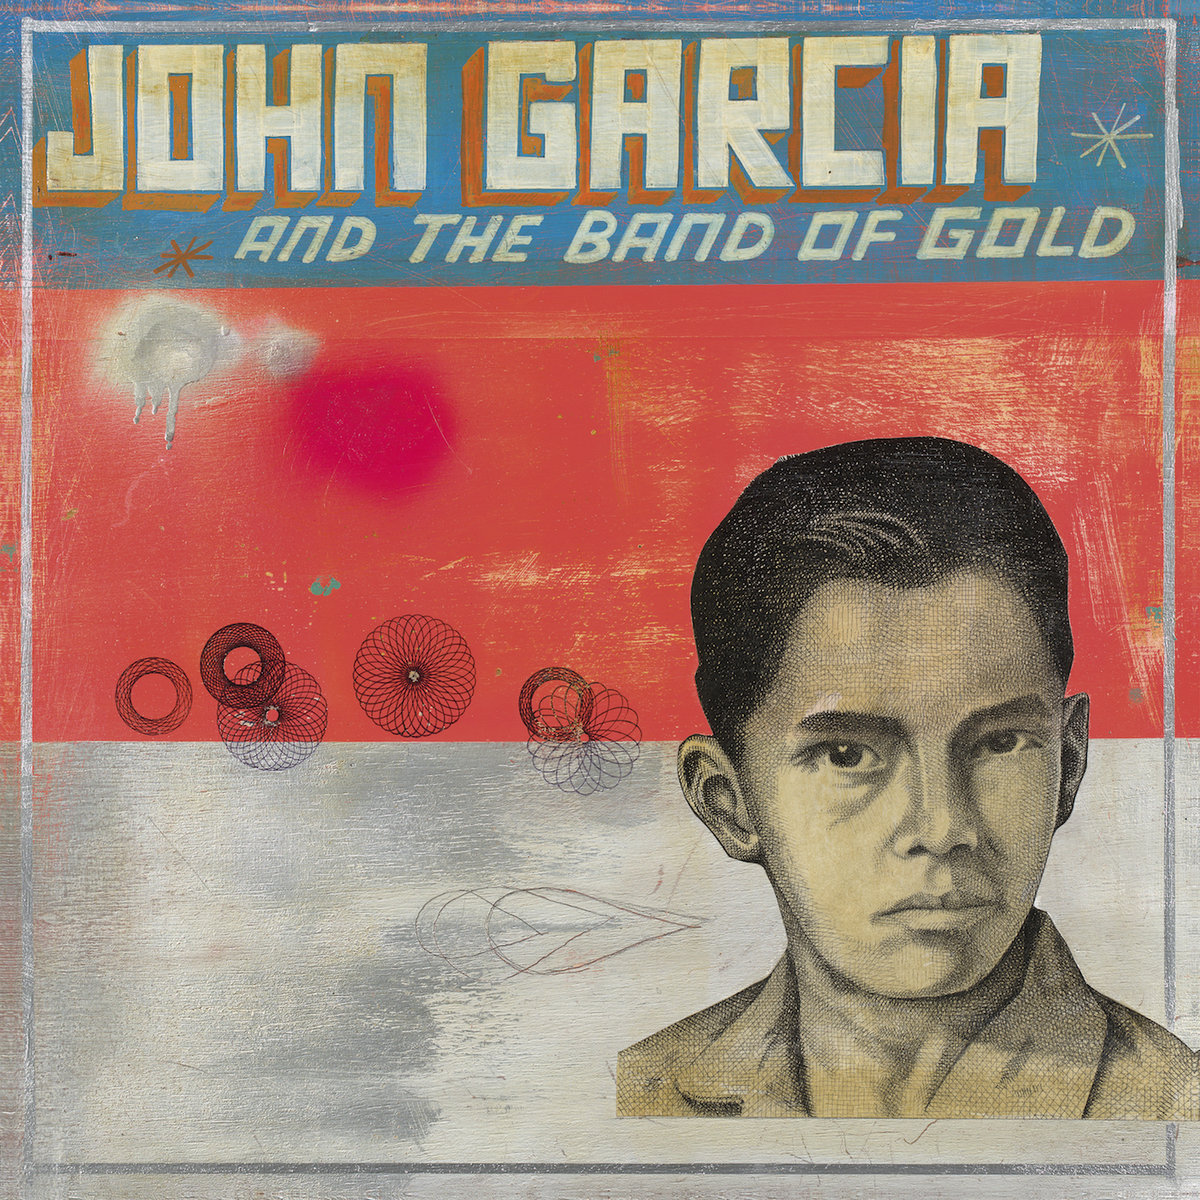 John-Garcia-and-the-band-of-gold